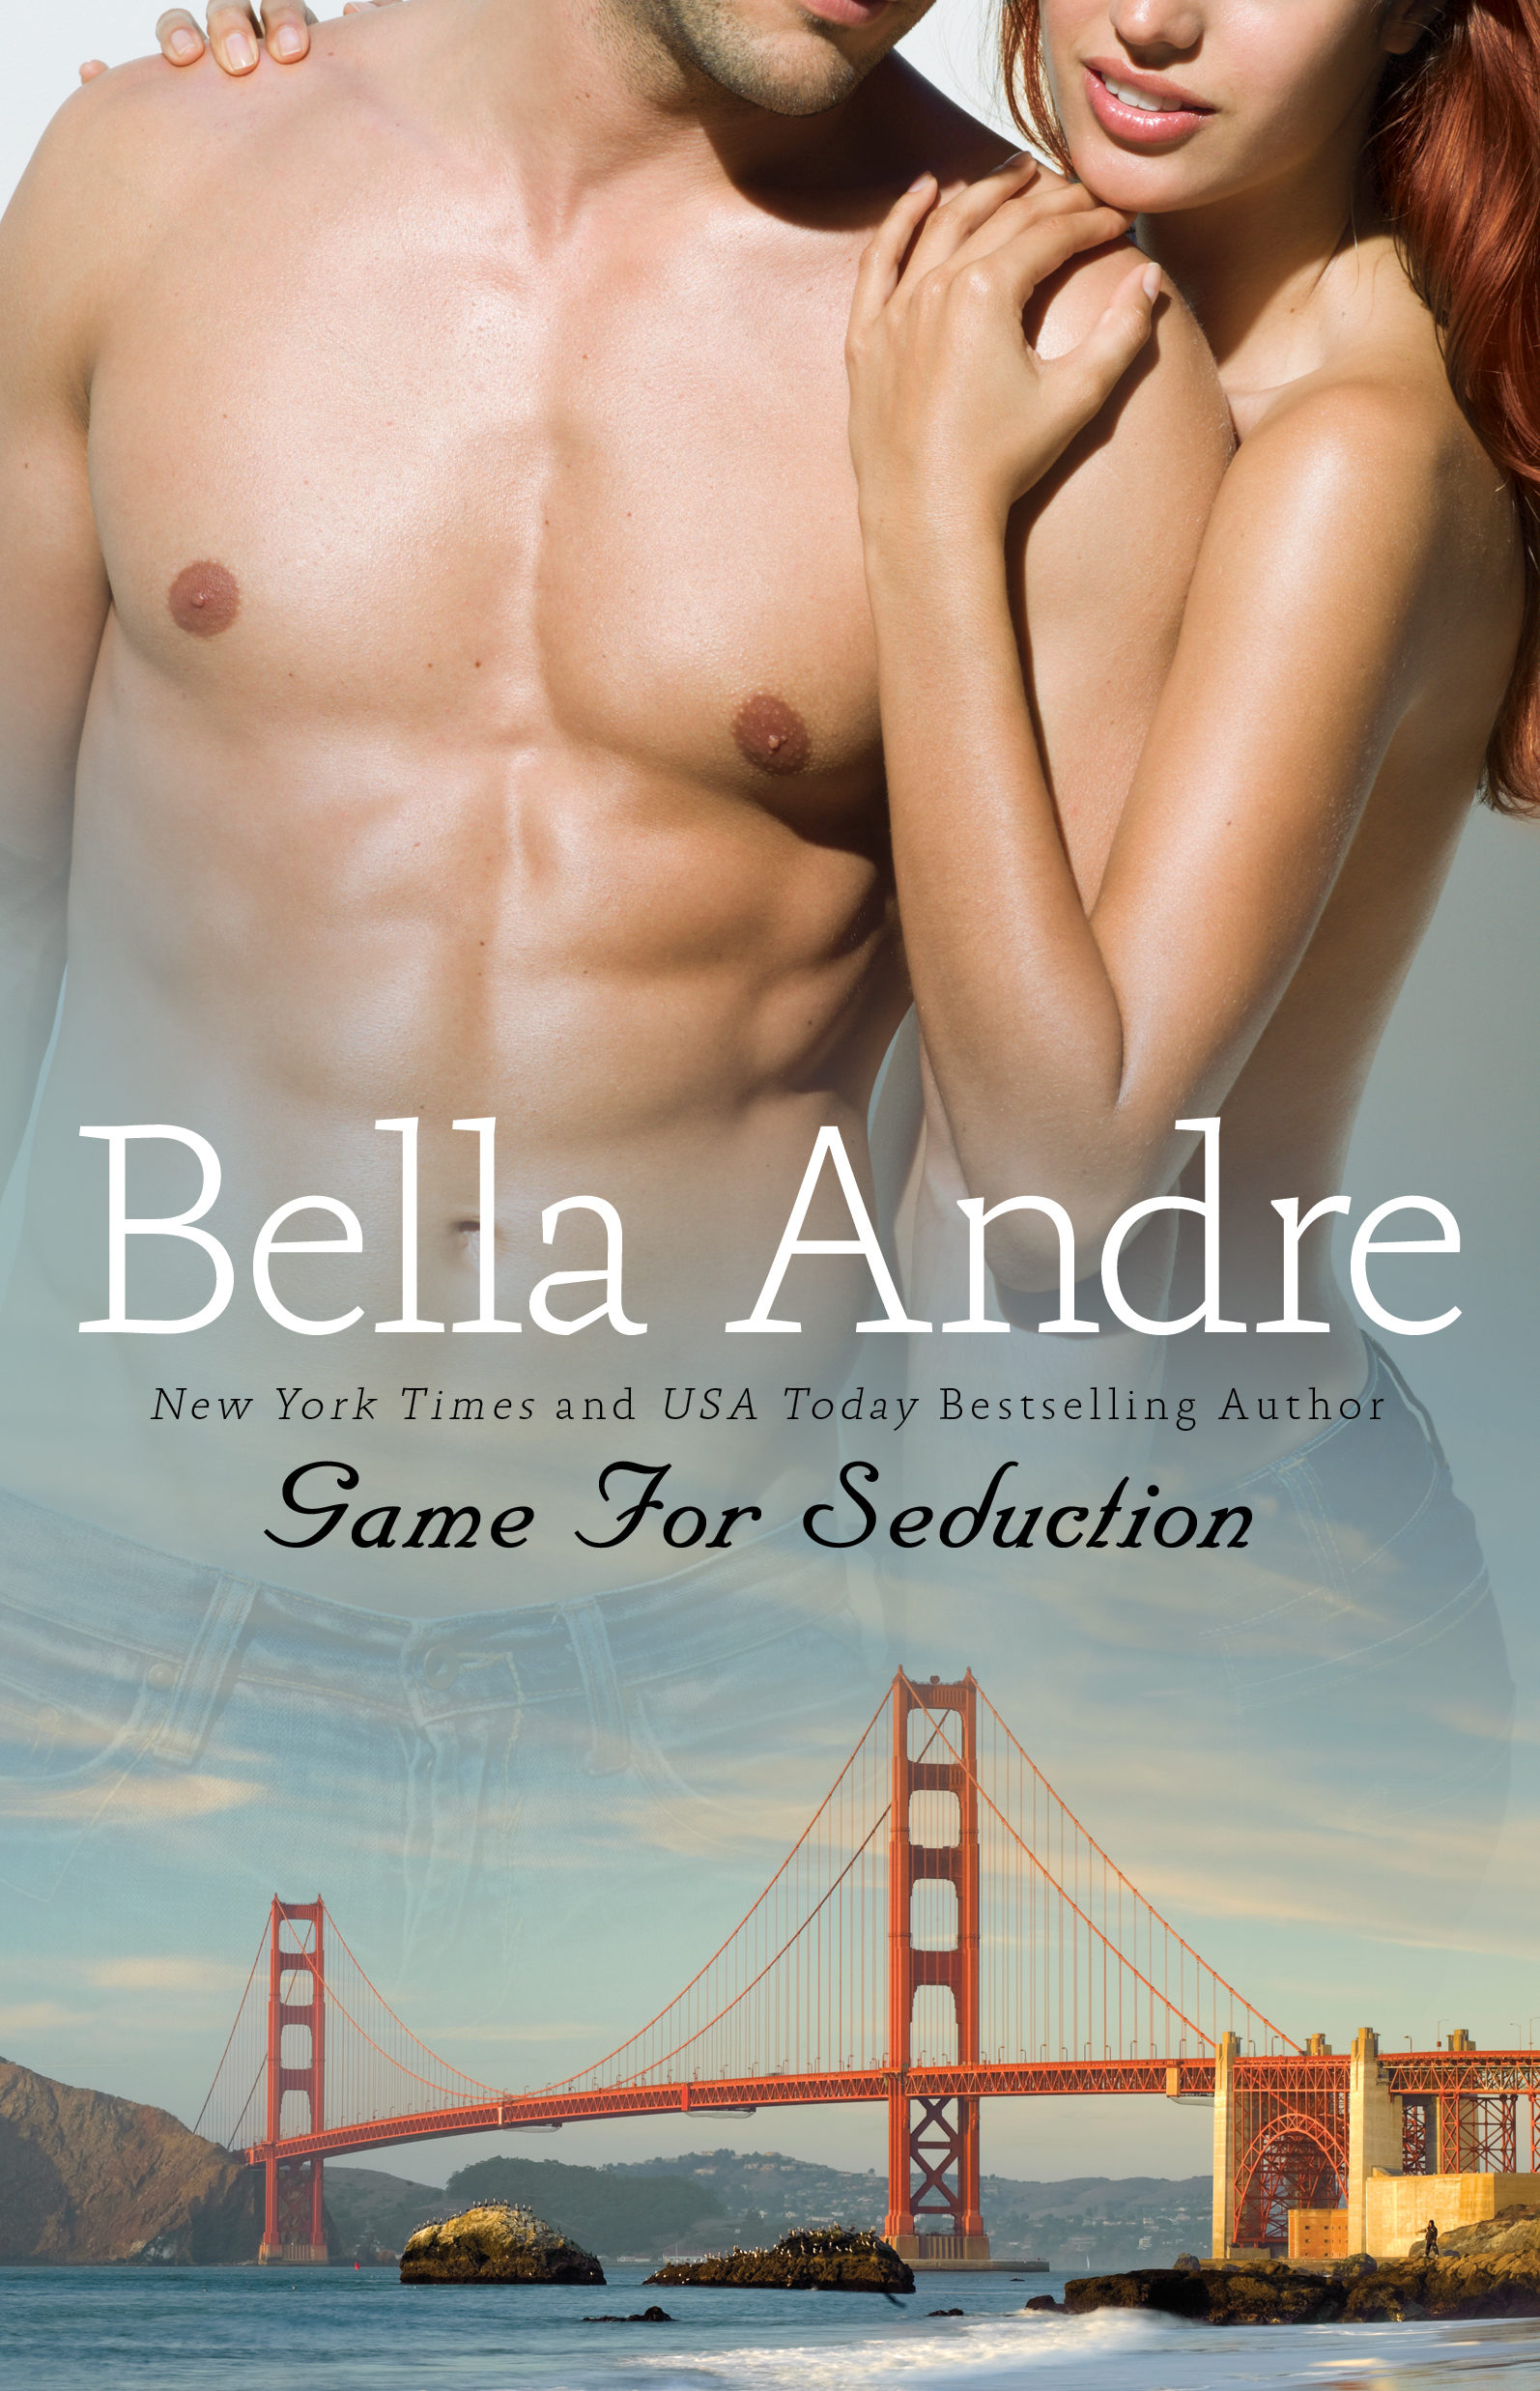 If your new to Bella Andre, then hang on for a heart pounding author who knows how to get the blood pumping. Looks like the Sullivans are here to stay in The Look of Love. Could not put this book down. It leaves you wanting more, and the love scenes well you